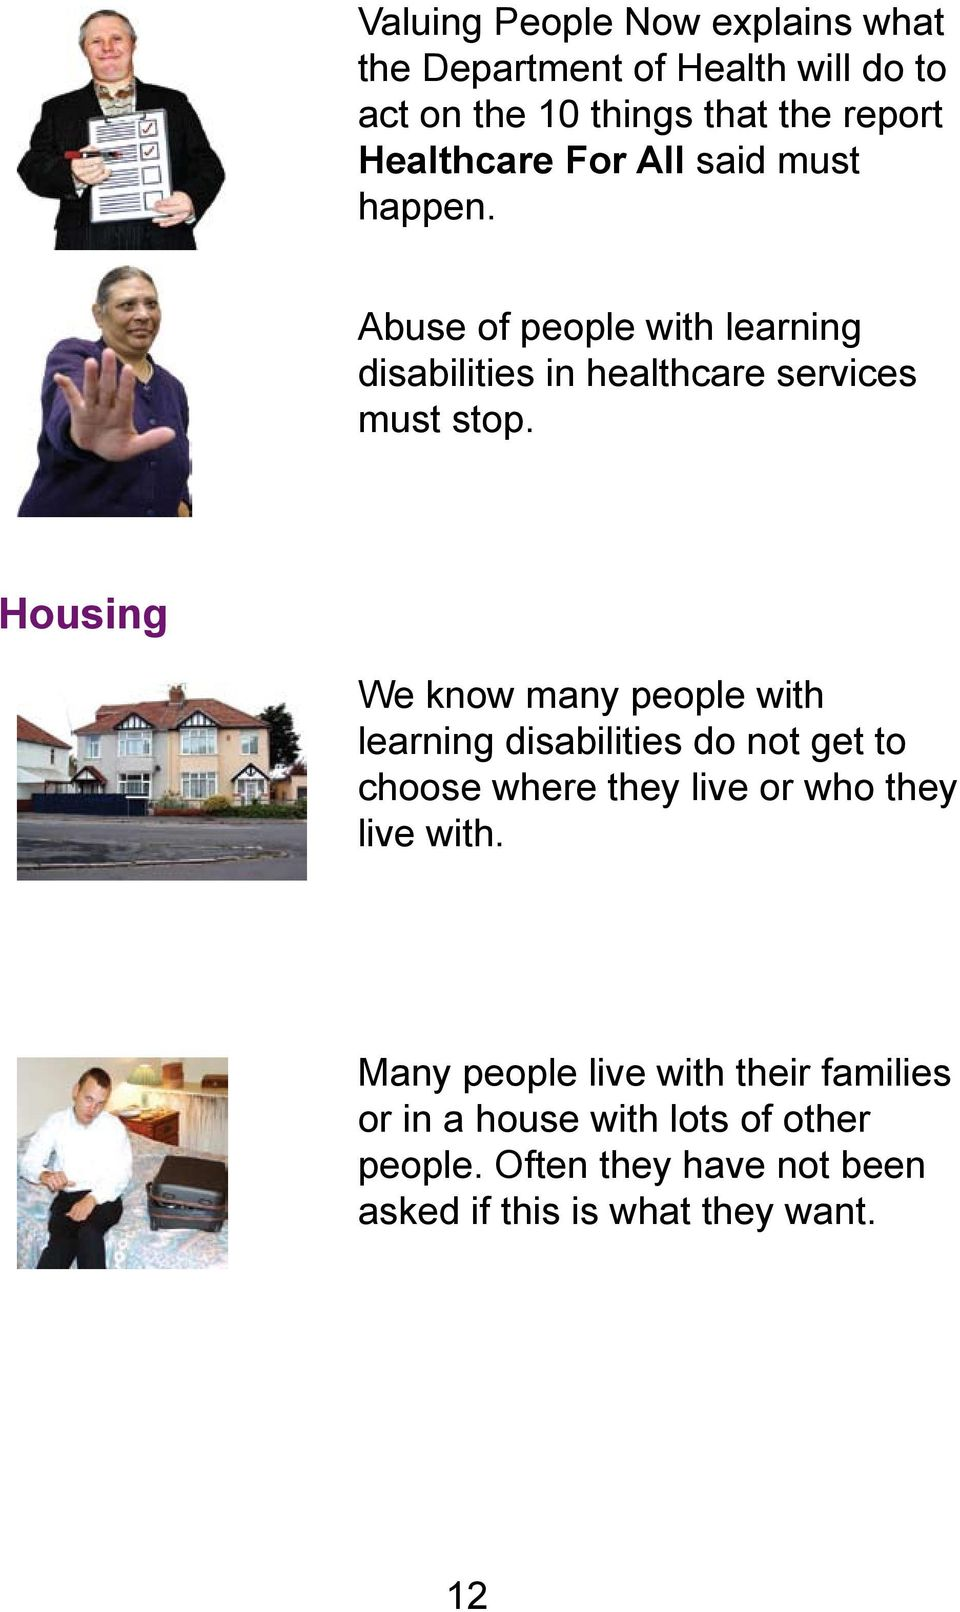 Housing We know many people with learning disabilities do not get to choose where they live or who they live with.